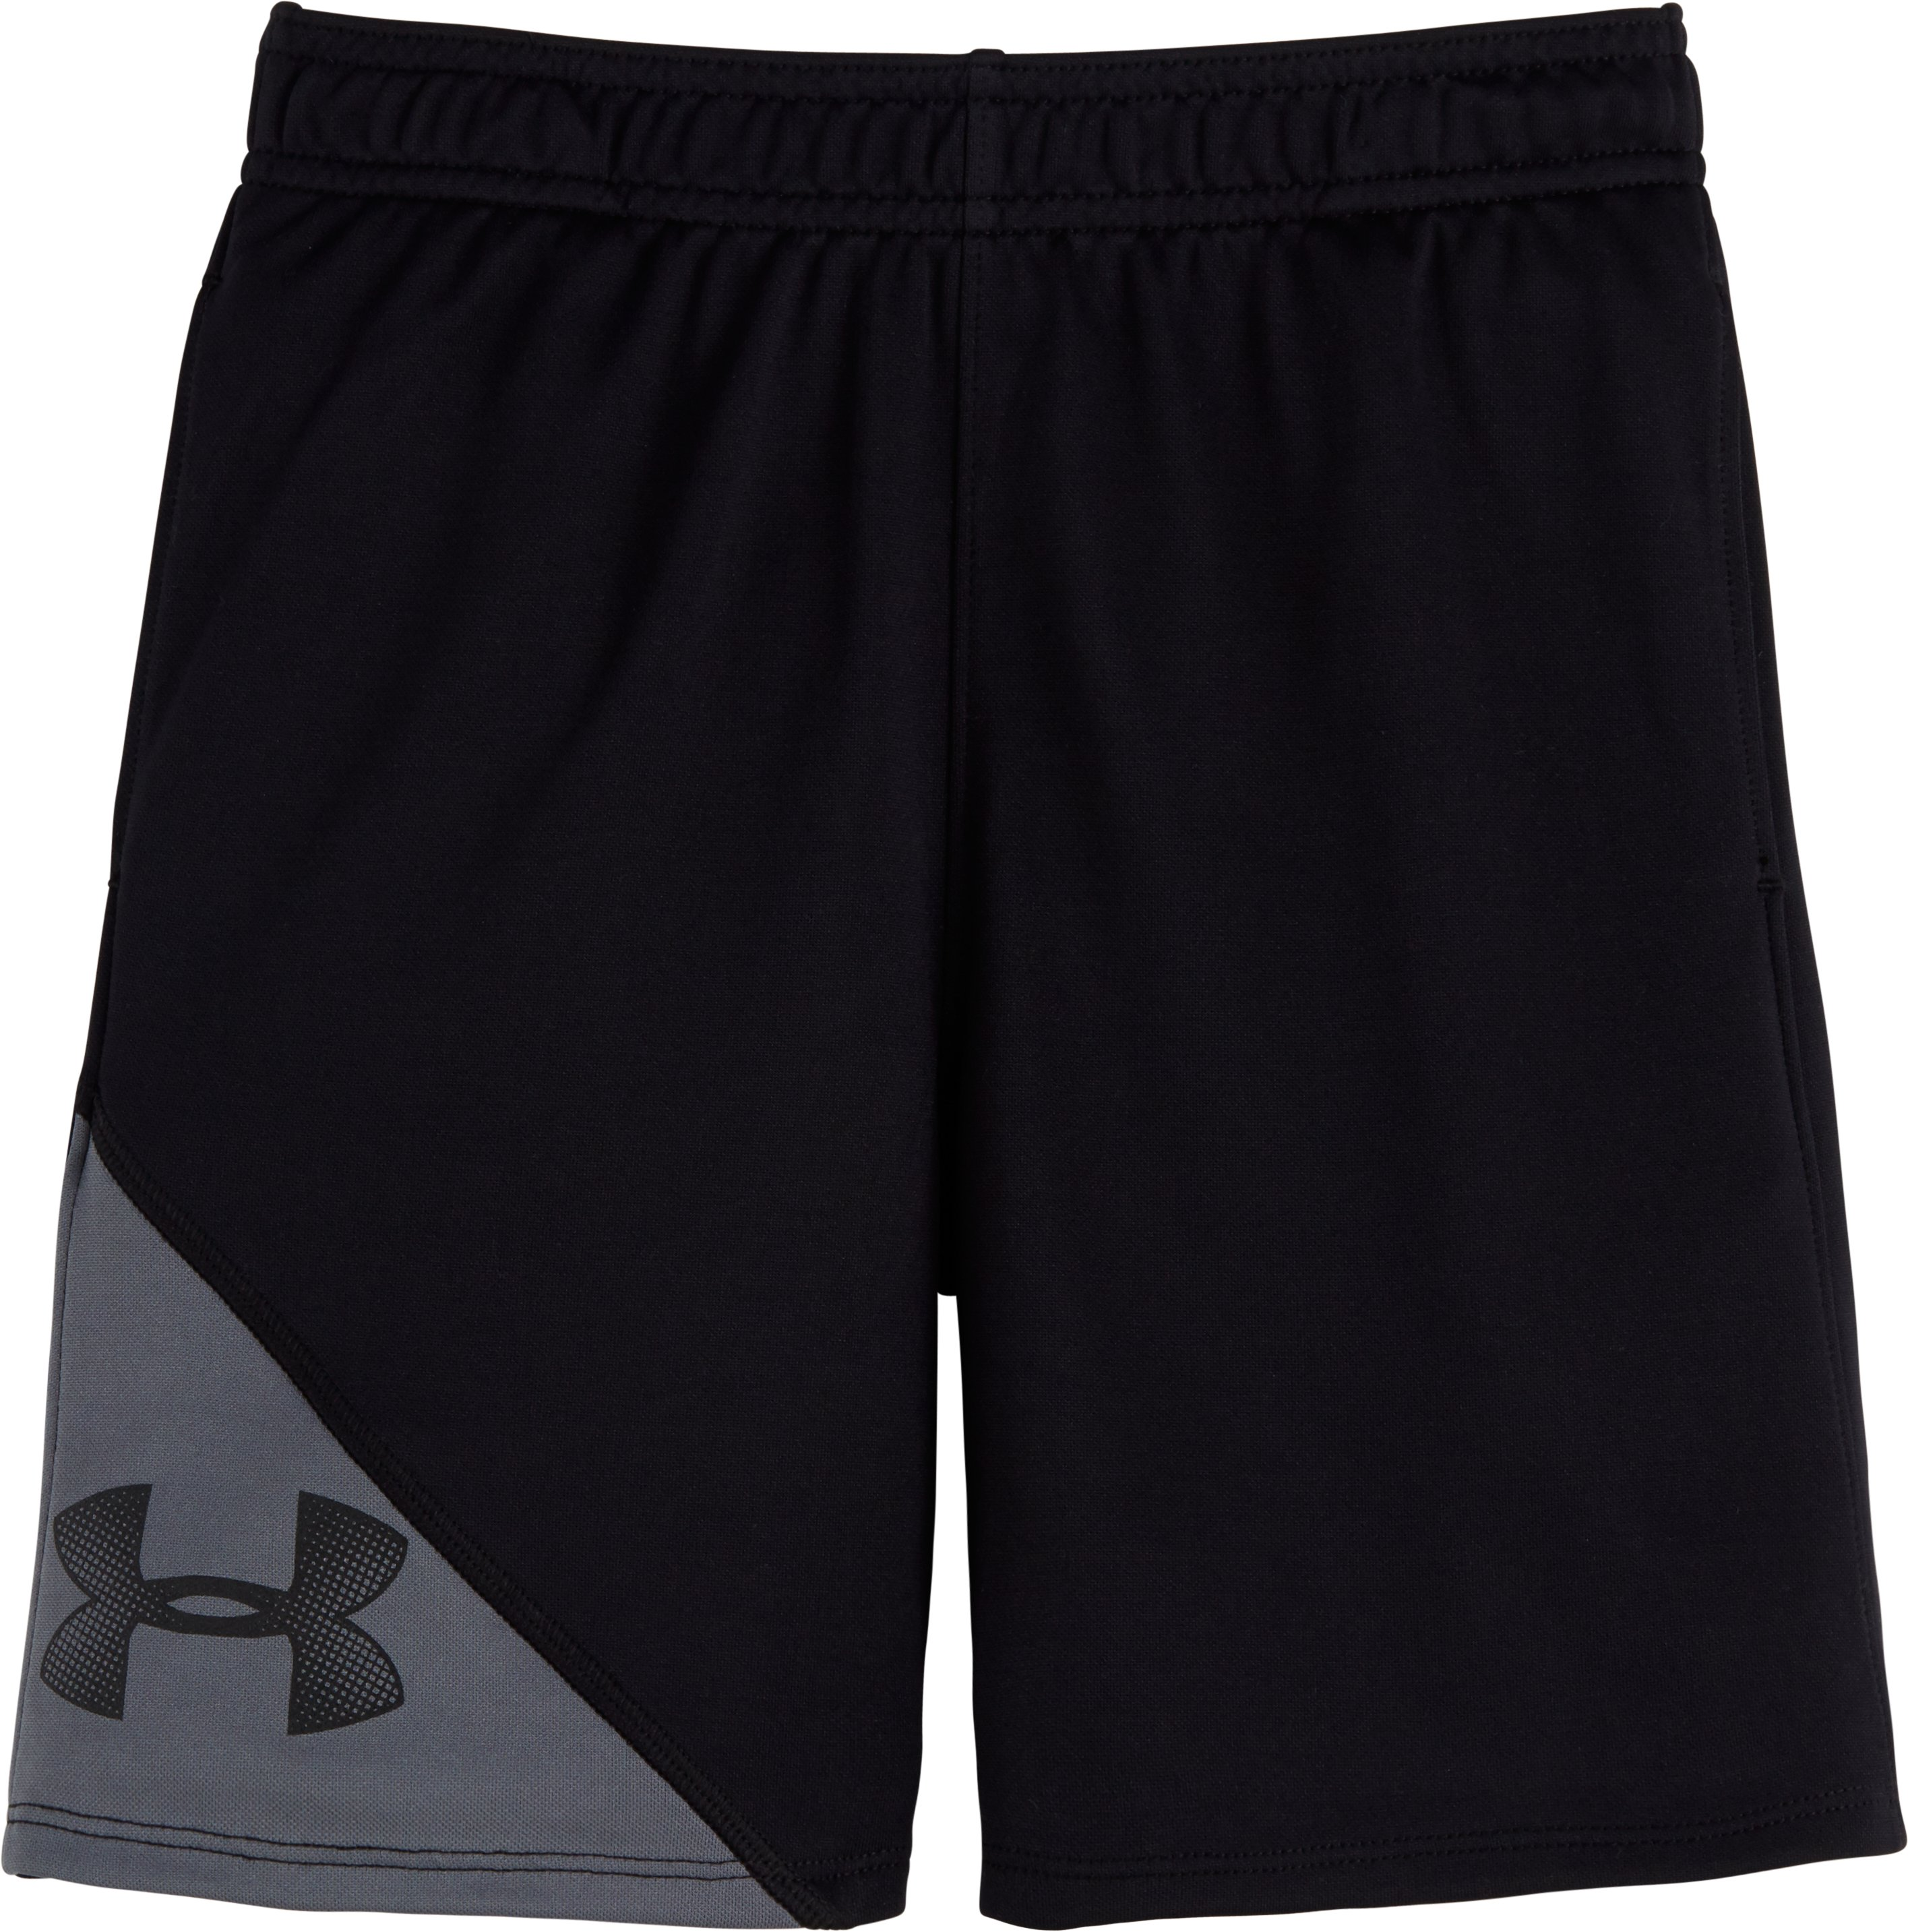 Boys' Toddler UA Prototype Shorts, Black